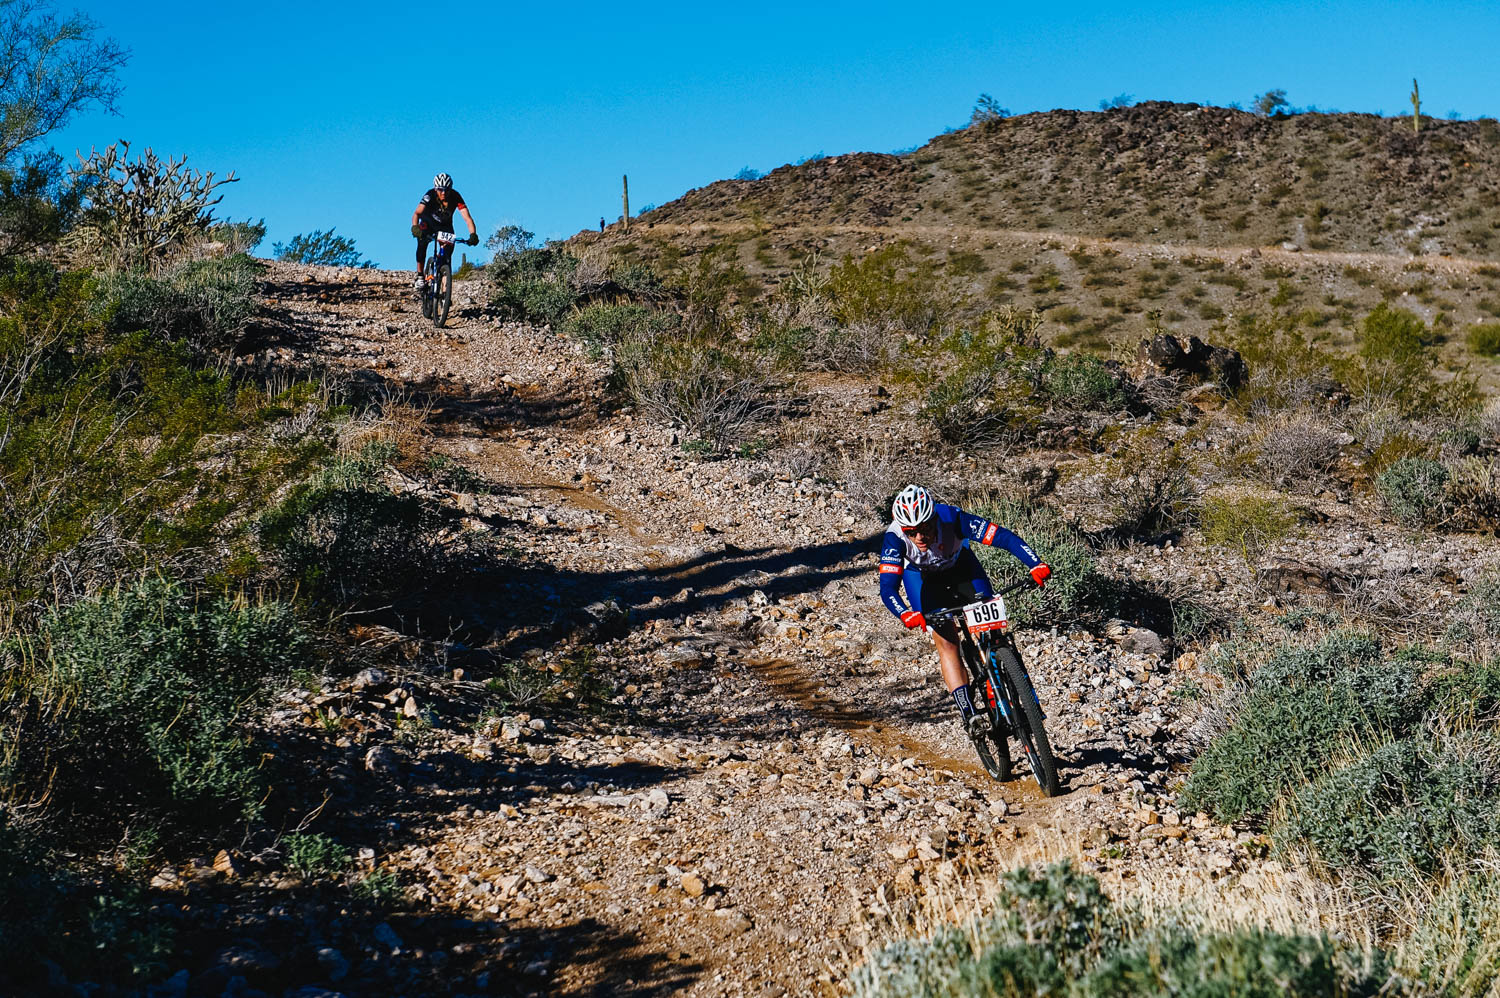 The Estrella course is the gnarliest of the MBAA race series. It's chunky, loose and steep.